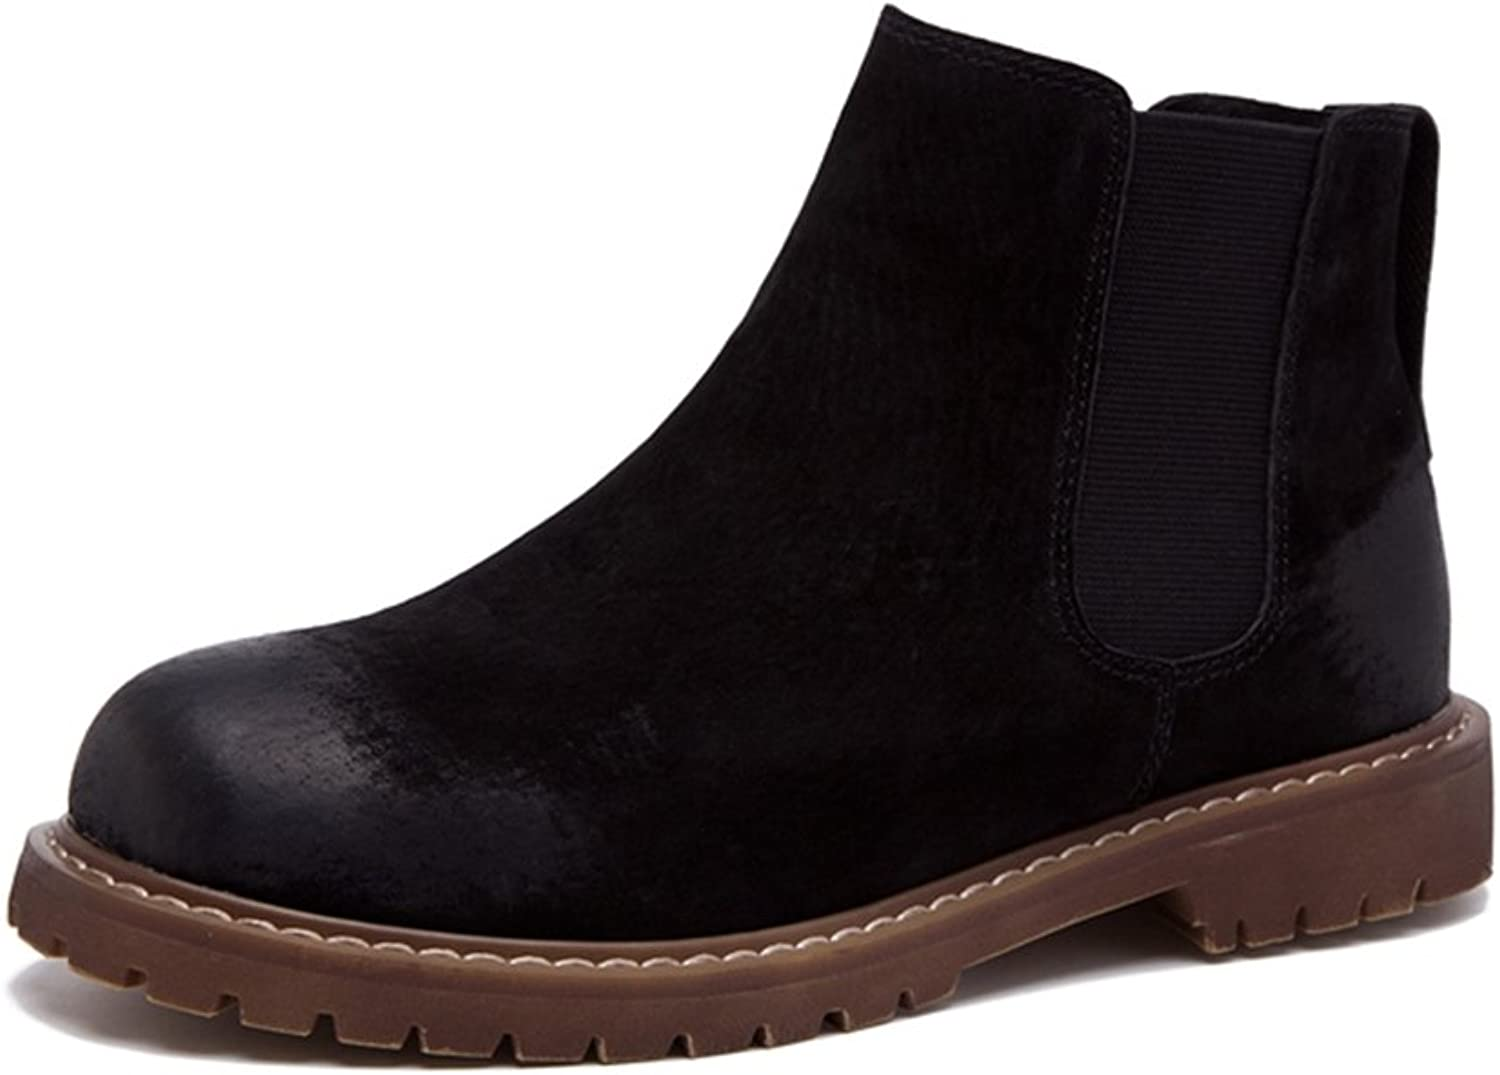 LL STUDIO Womens' Basic Simple Leather Casual Bootie shoes